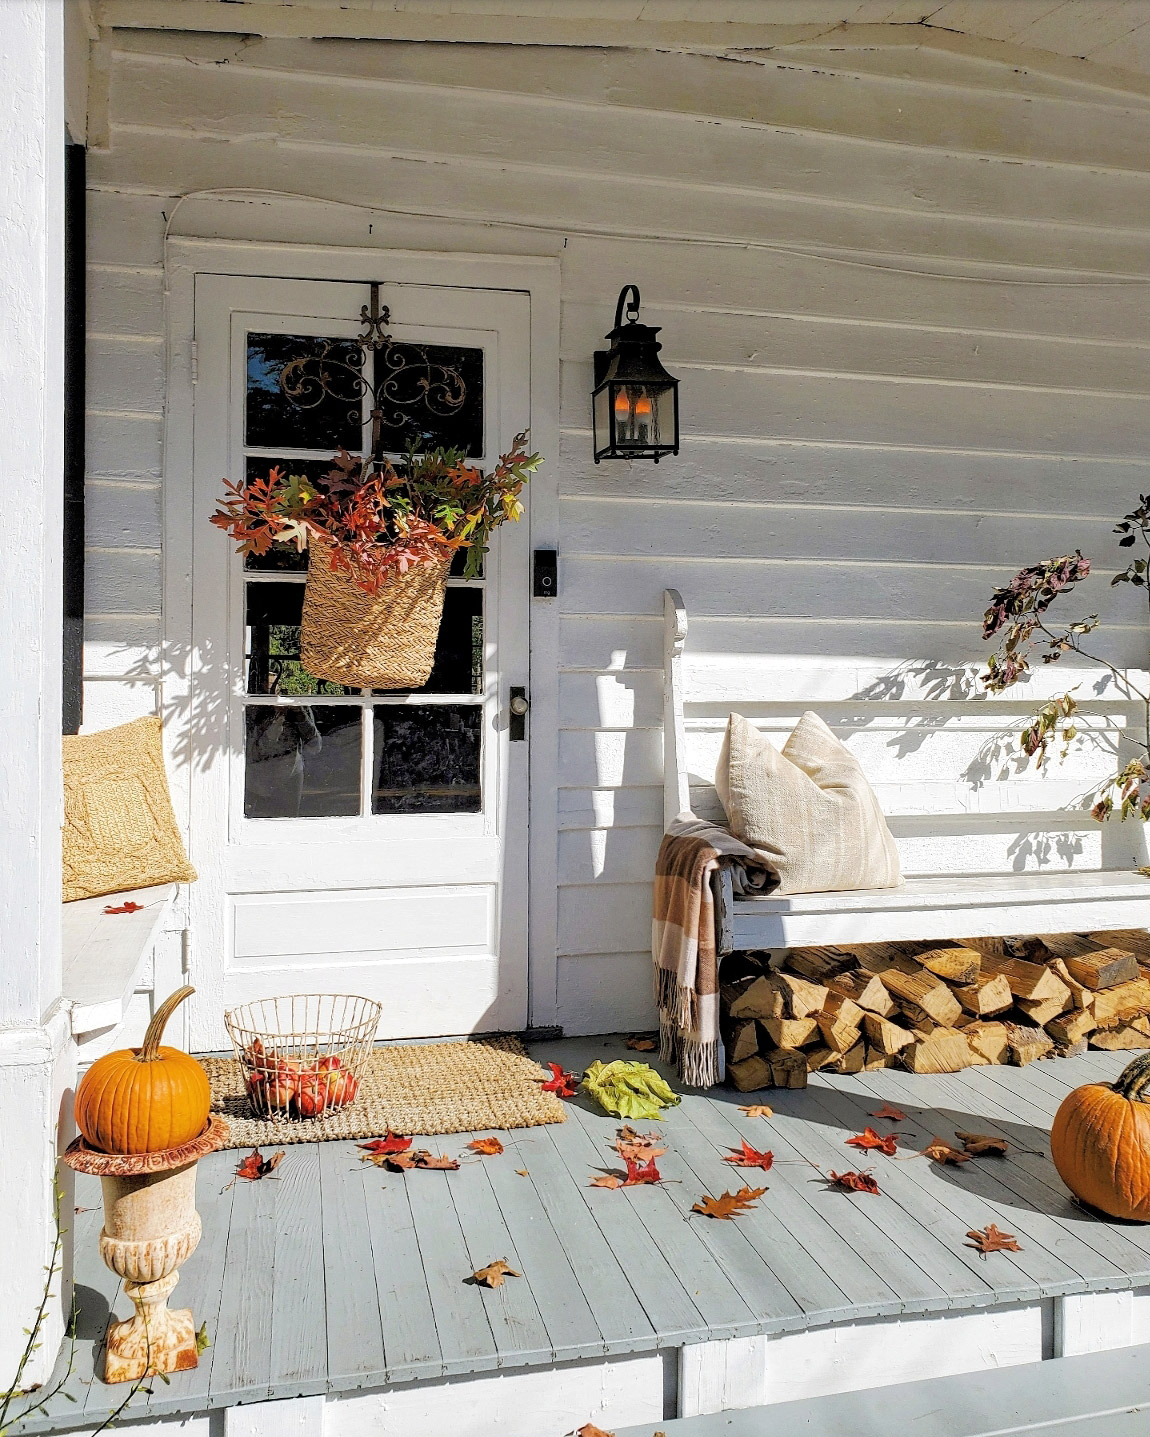 fall porch with colorful leaves in baskets